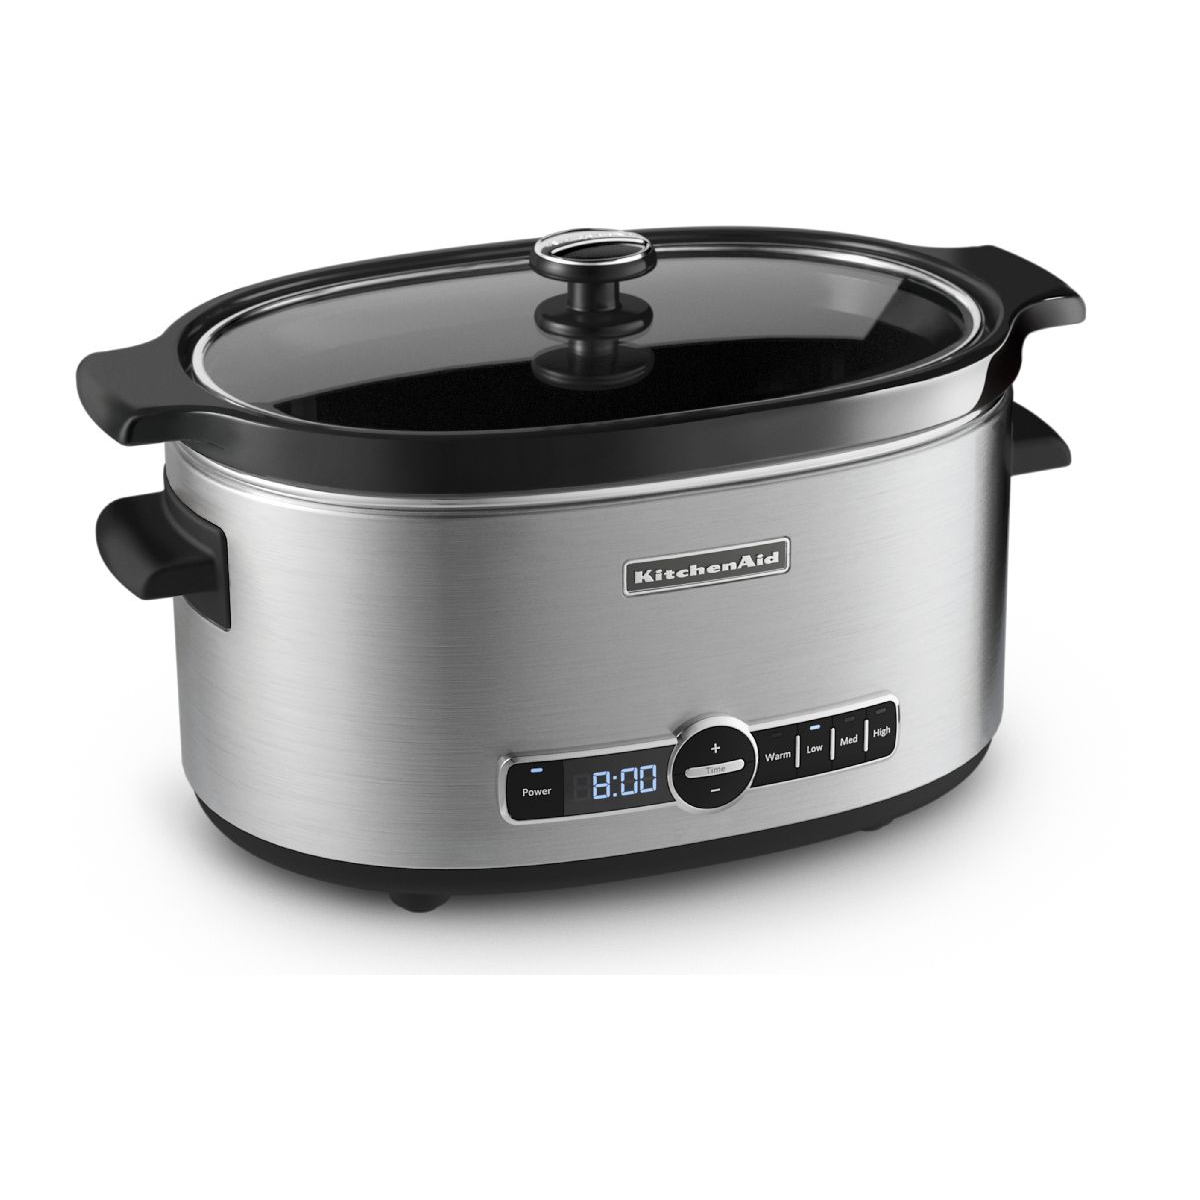 KitchenAid Stainless Steel Finished 6 Quart Slow Cooker with Glass Lid